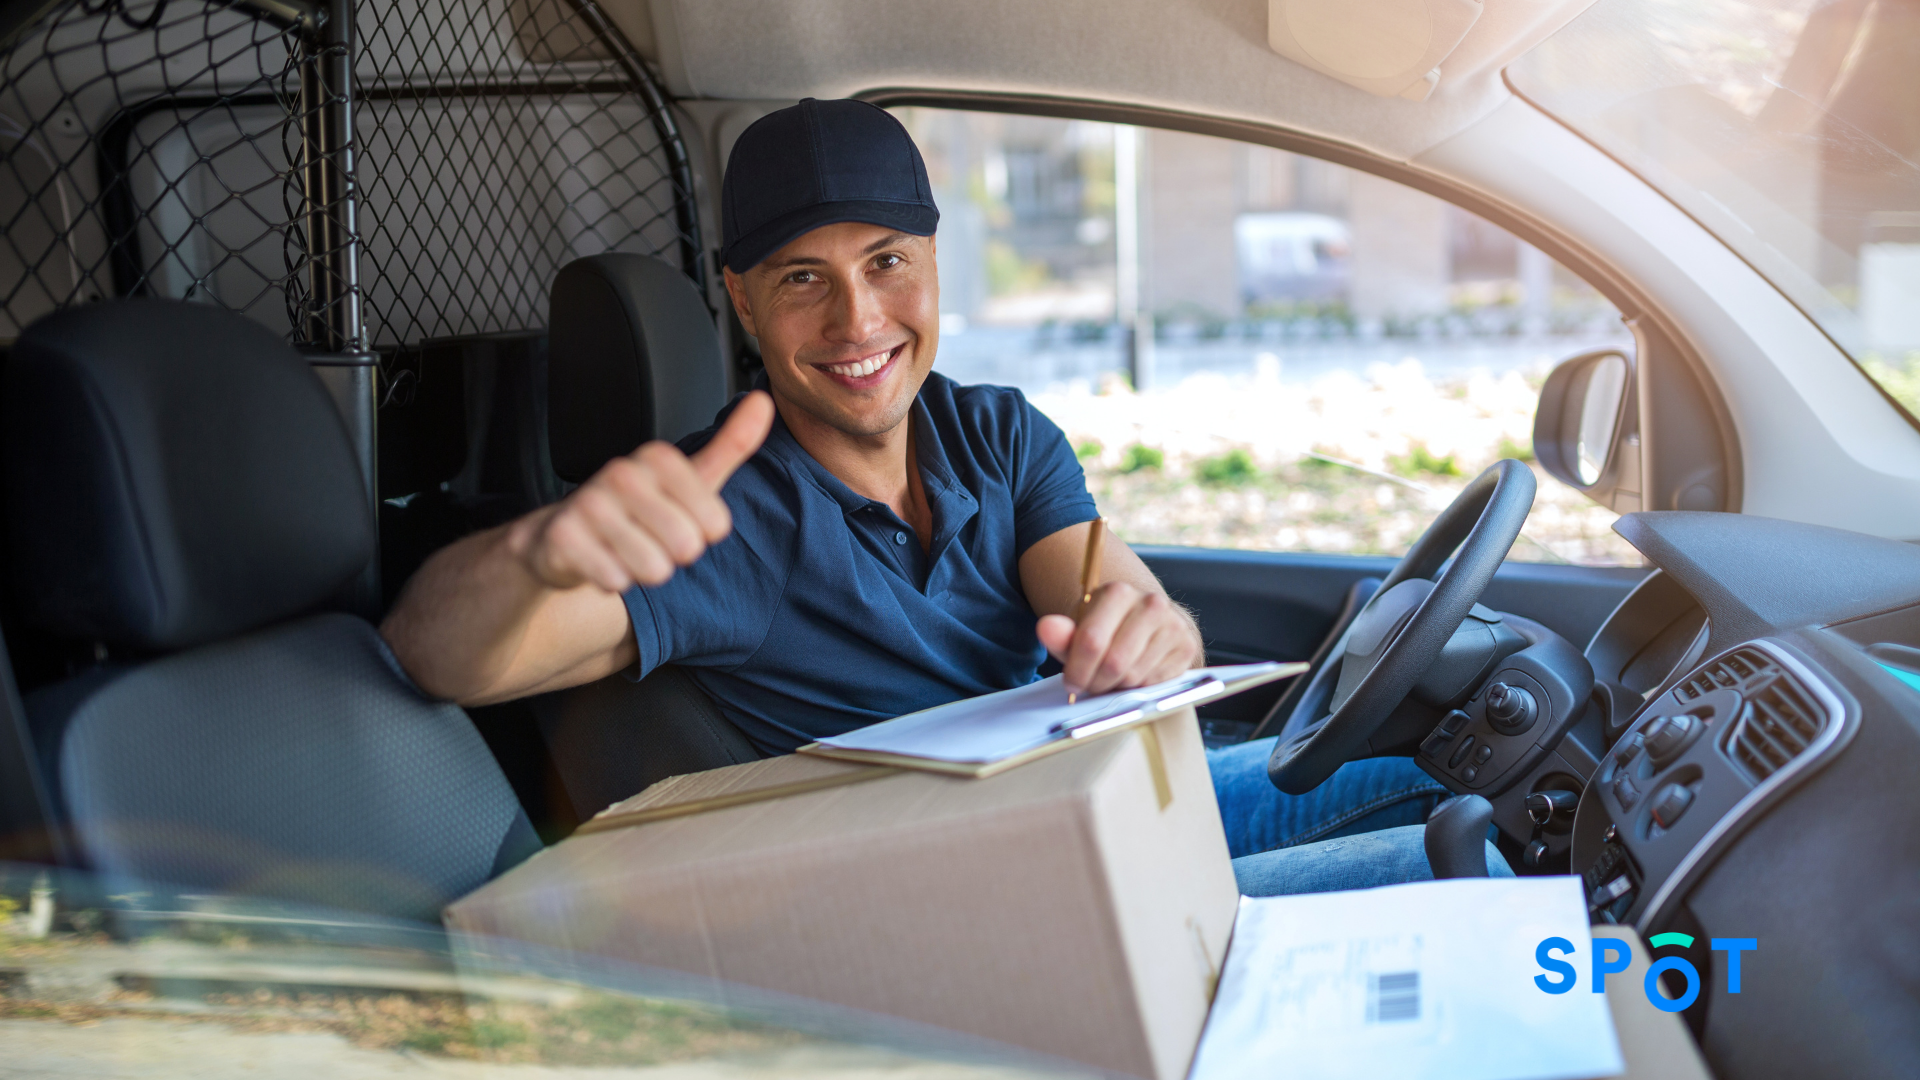 An e-commerce delivery driver mastering the last mile